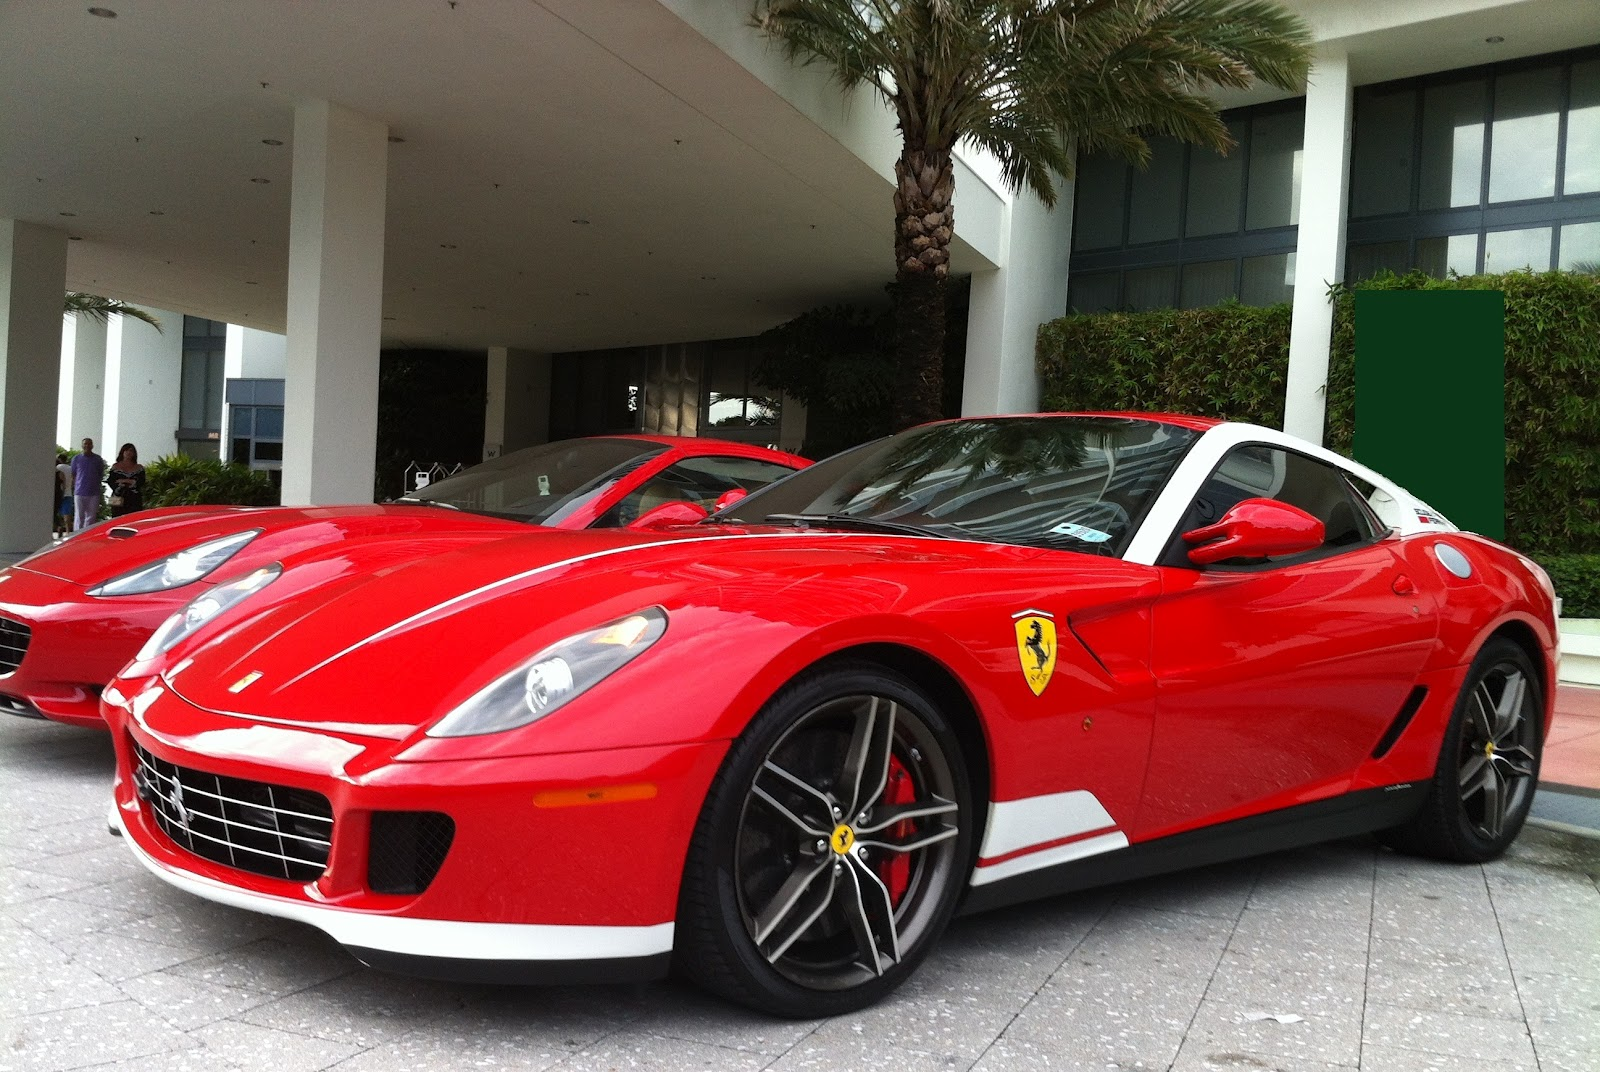 Limited Edition Fernando Alonso Ferrari 599 GTB